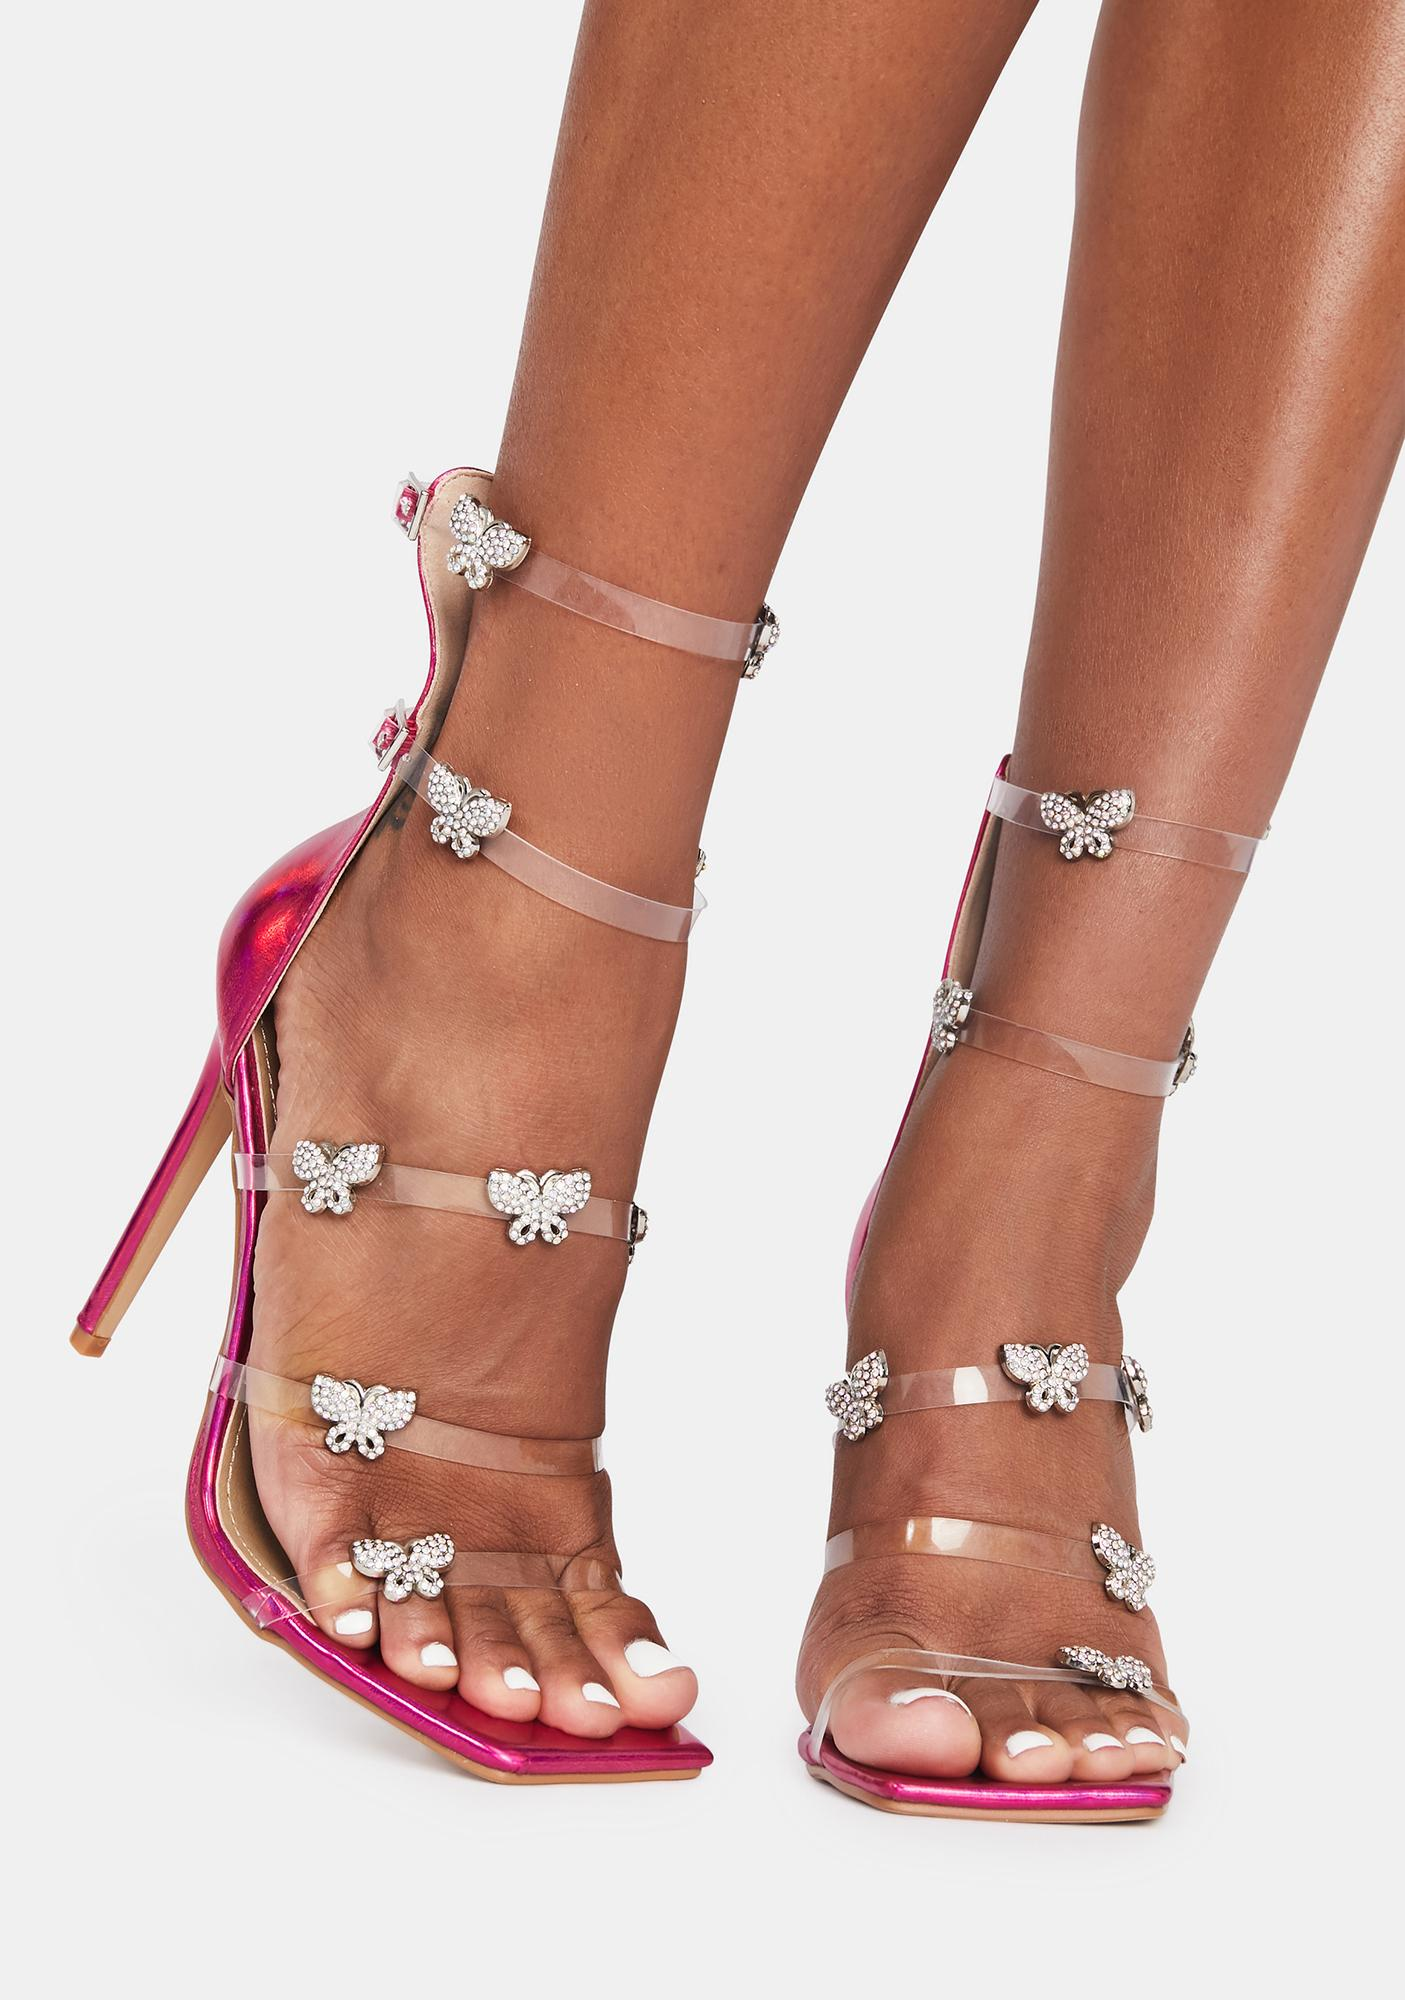 Pixie Making Magic Butterfly Heels